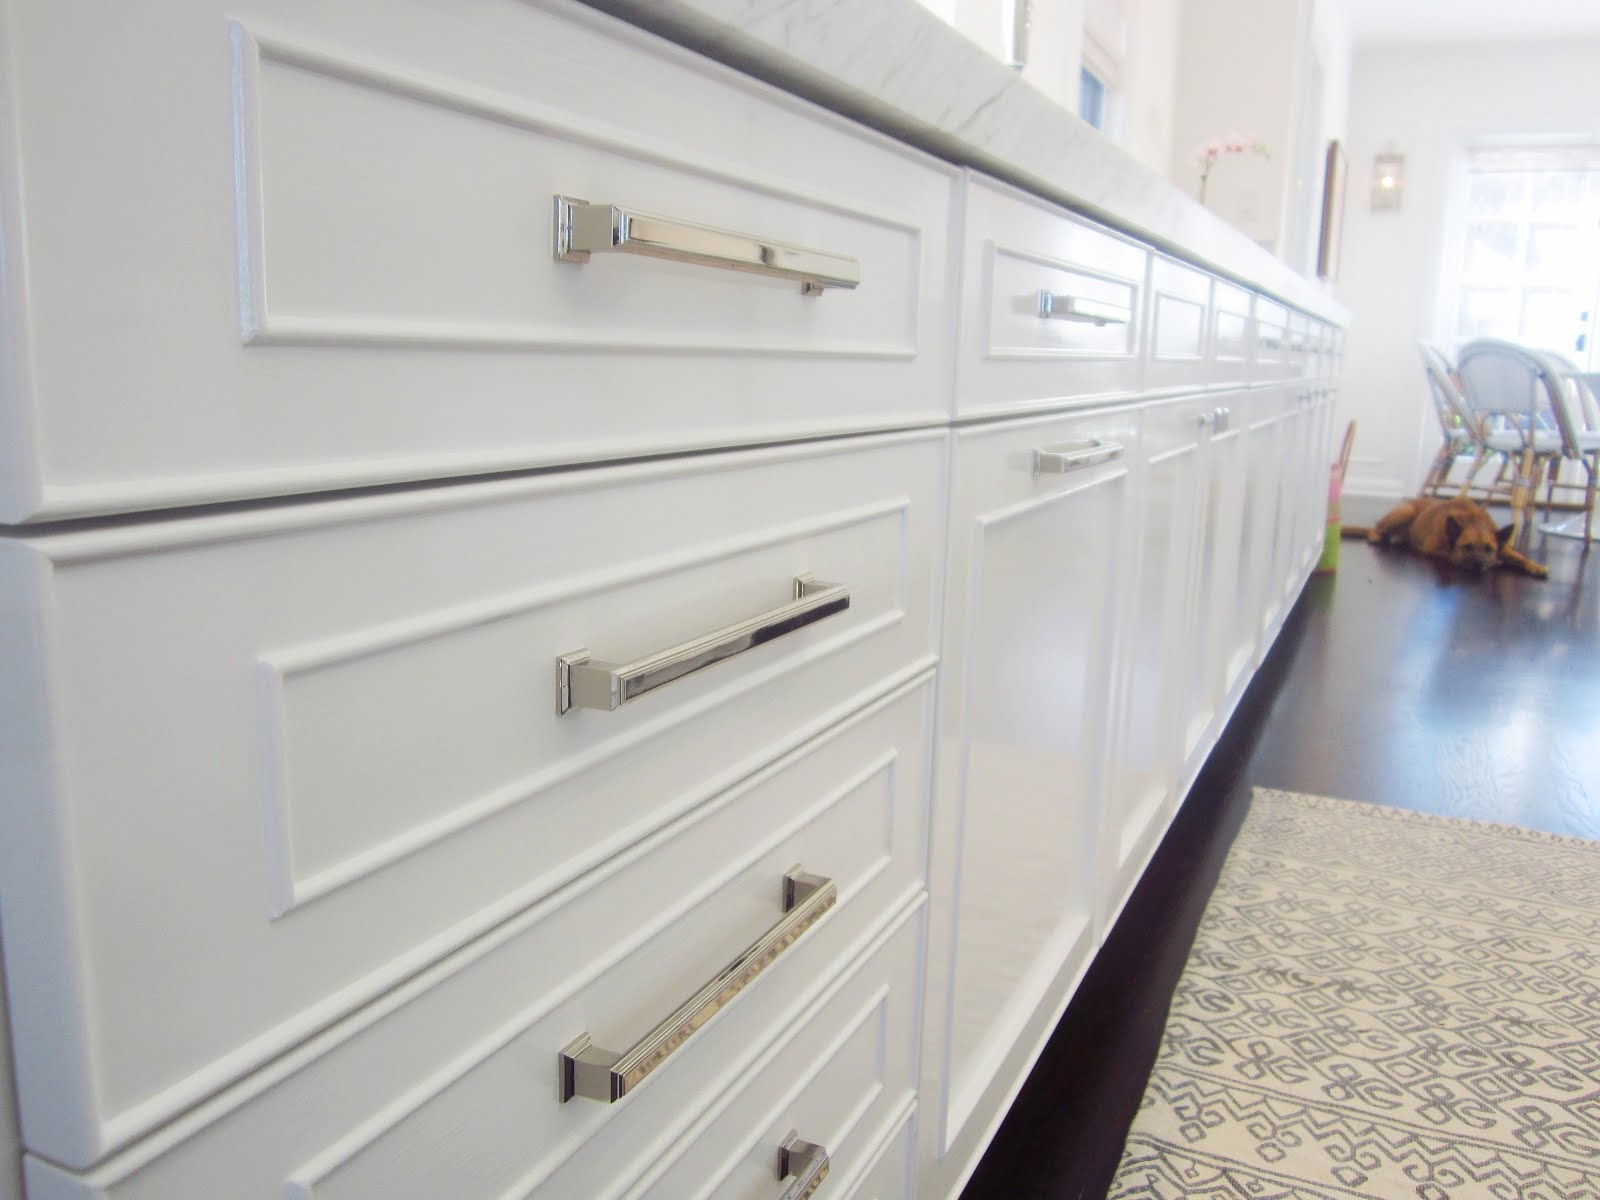 Kitchen Cabinet Handles Brushed Nickel